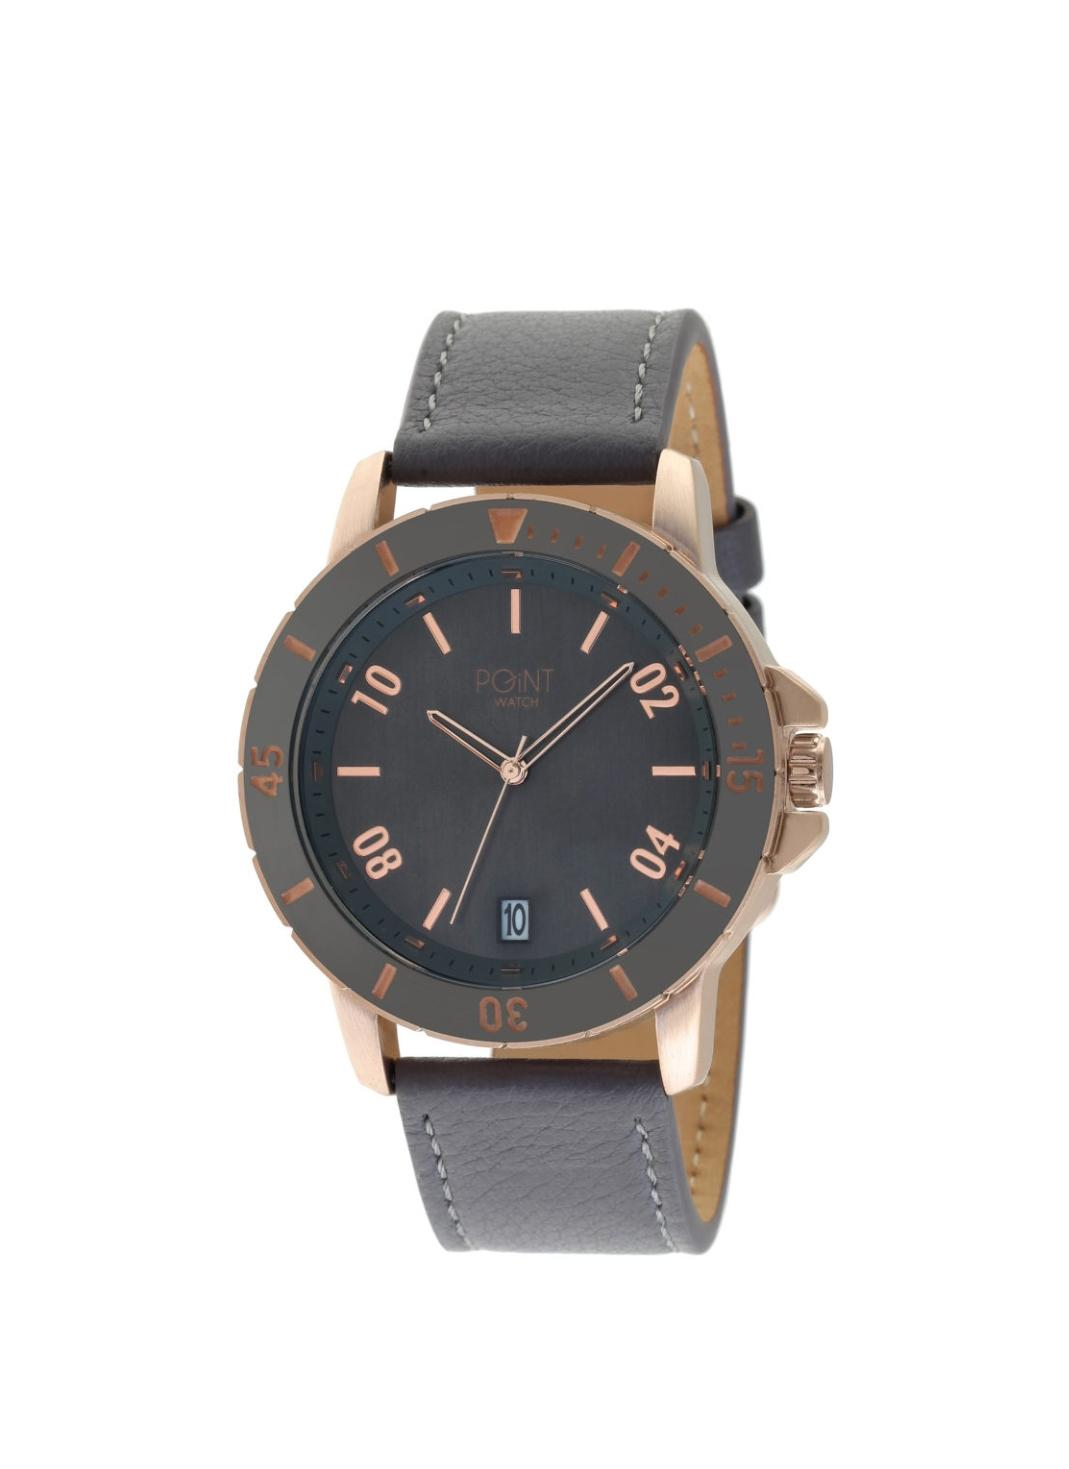 Ανδρικό Ρολόι Point Mars Grey Leather Strap SK9.